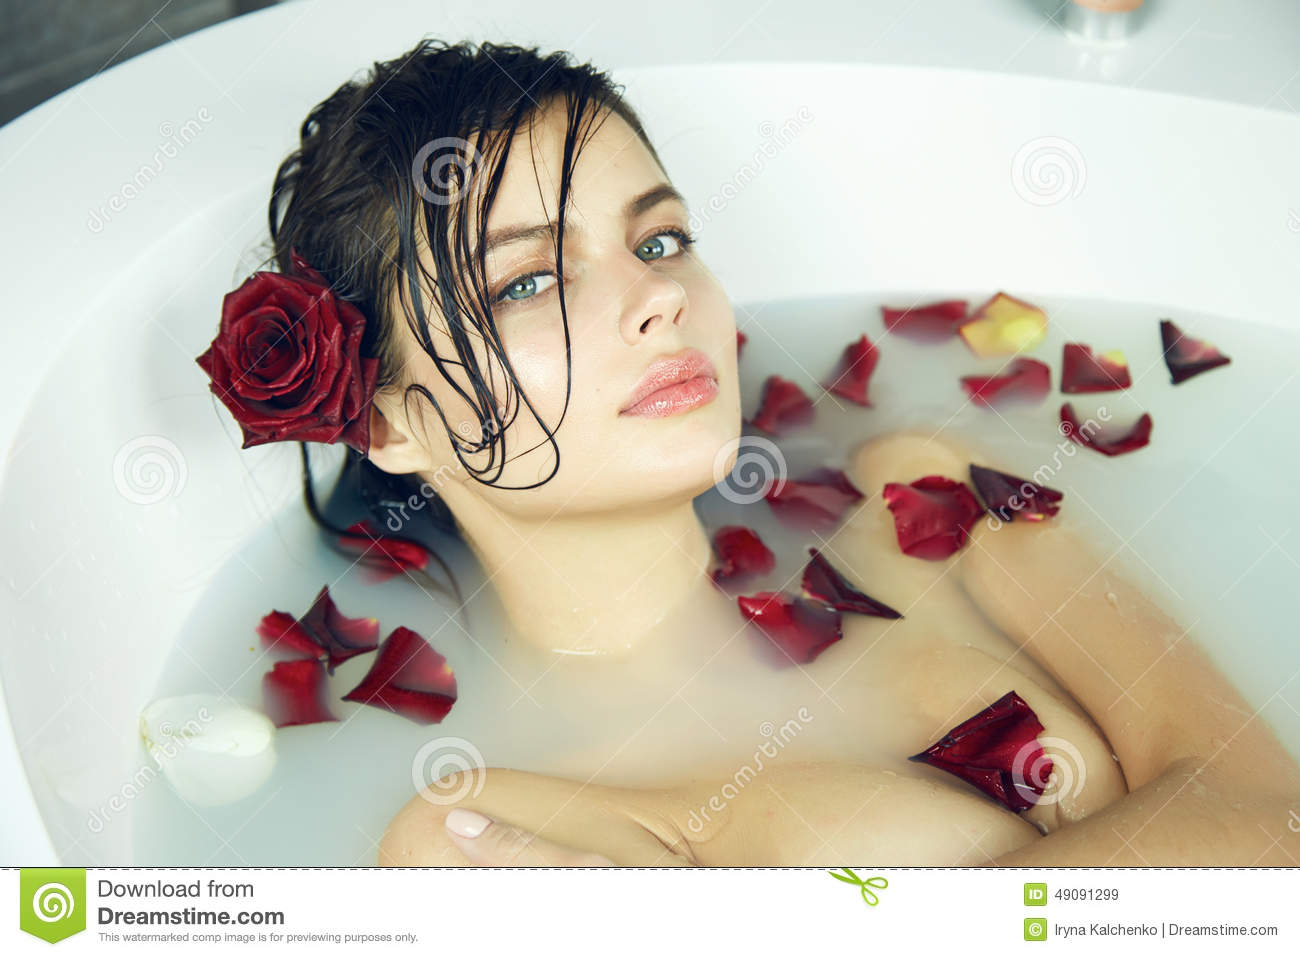 Salon Erotic Beautiful Woman Takes Bath Rose Candles Valentine 39s Day